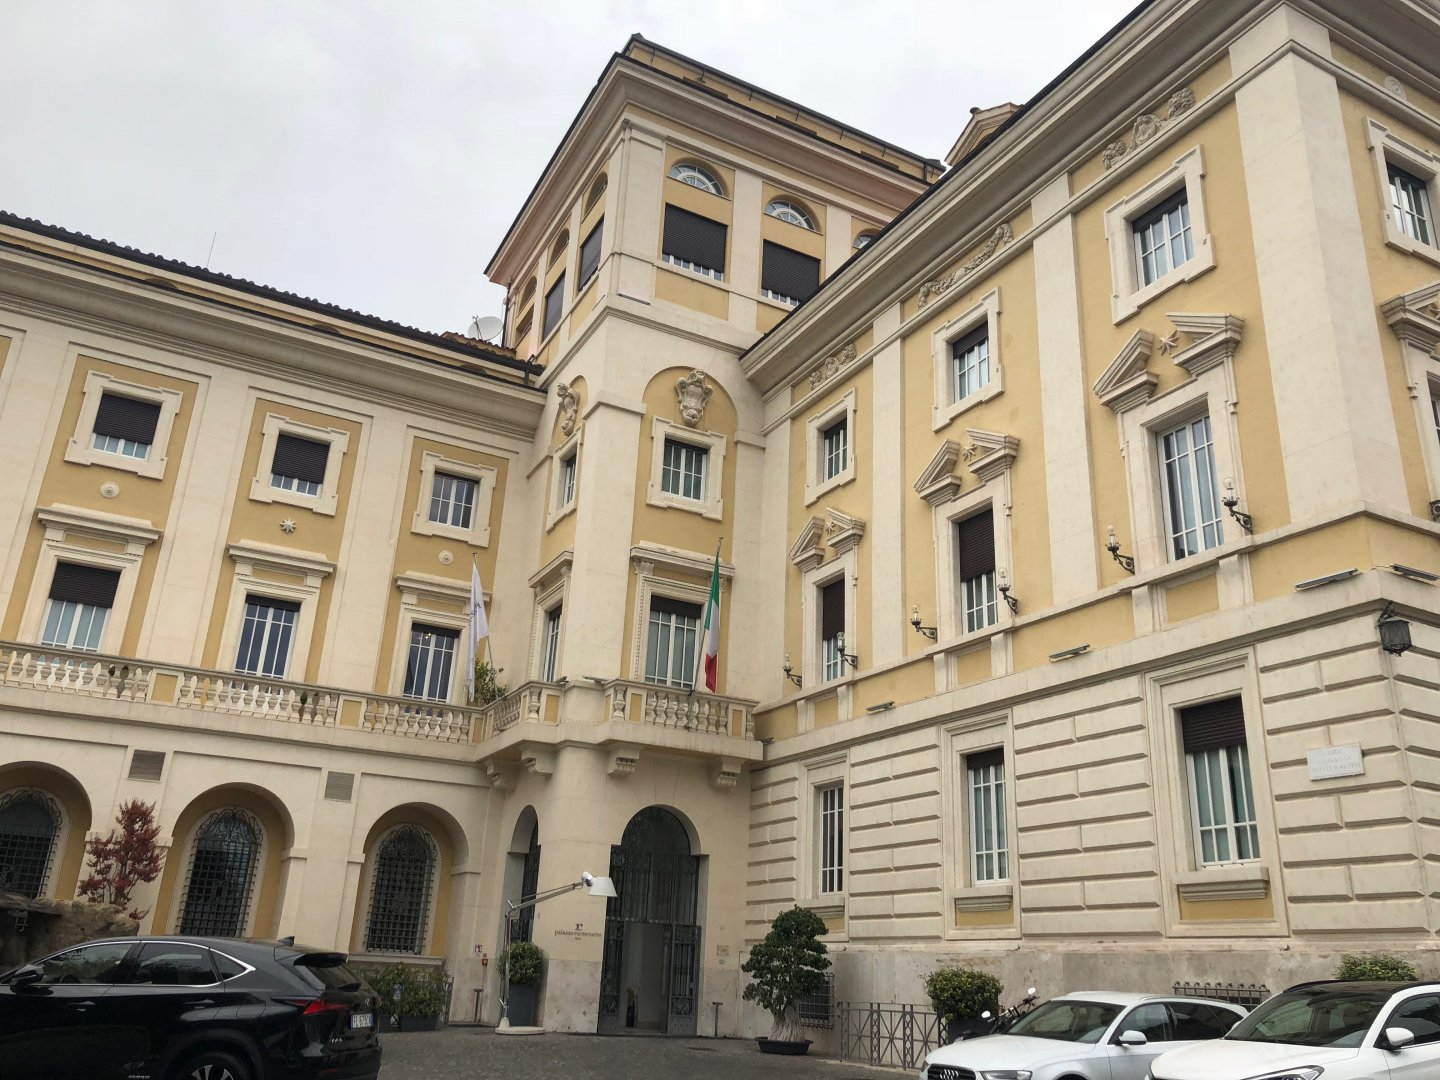 The Best Hotel Base In Rome At The Palazzo Montemartini